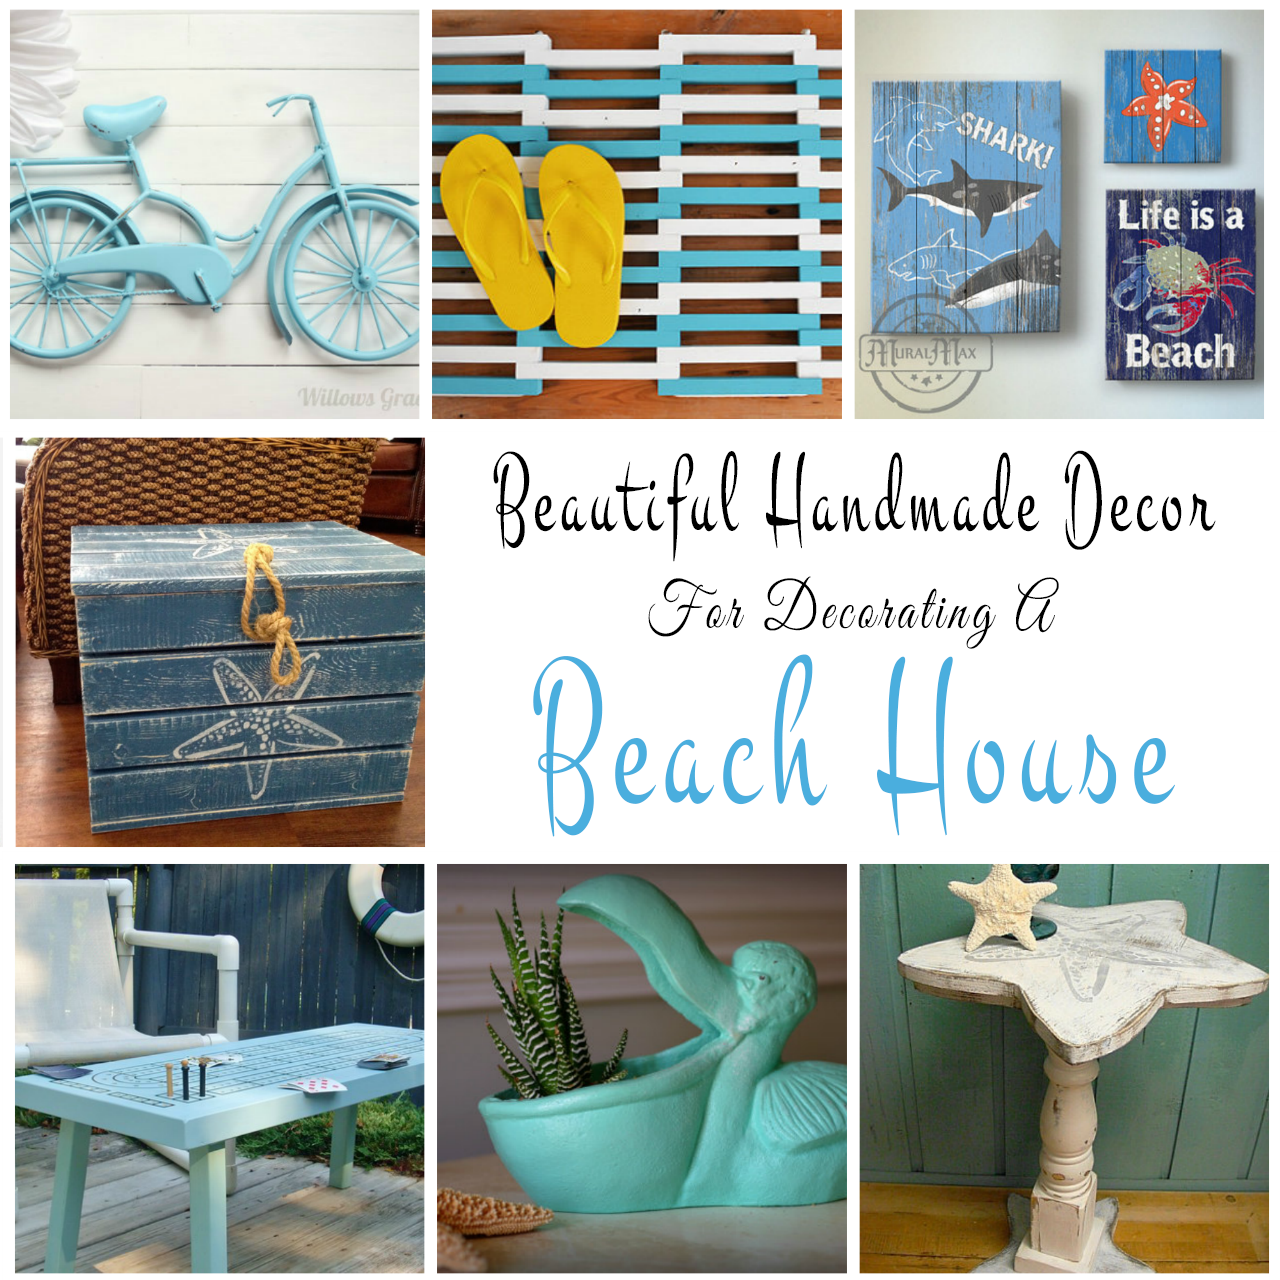 25 Handmade Decor Ideas For Decorating A Beach House Glitter N Spice